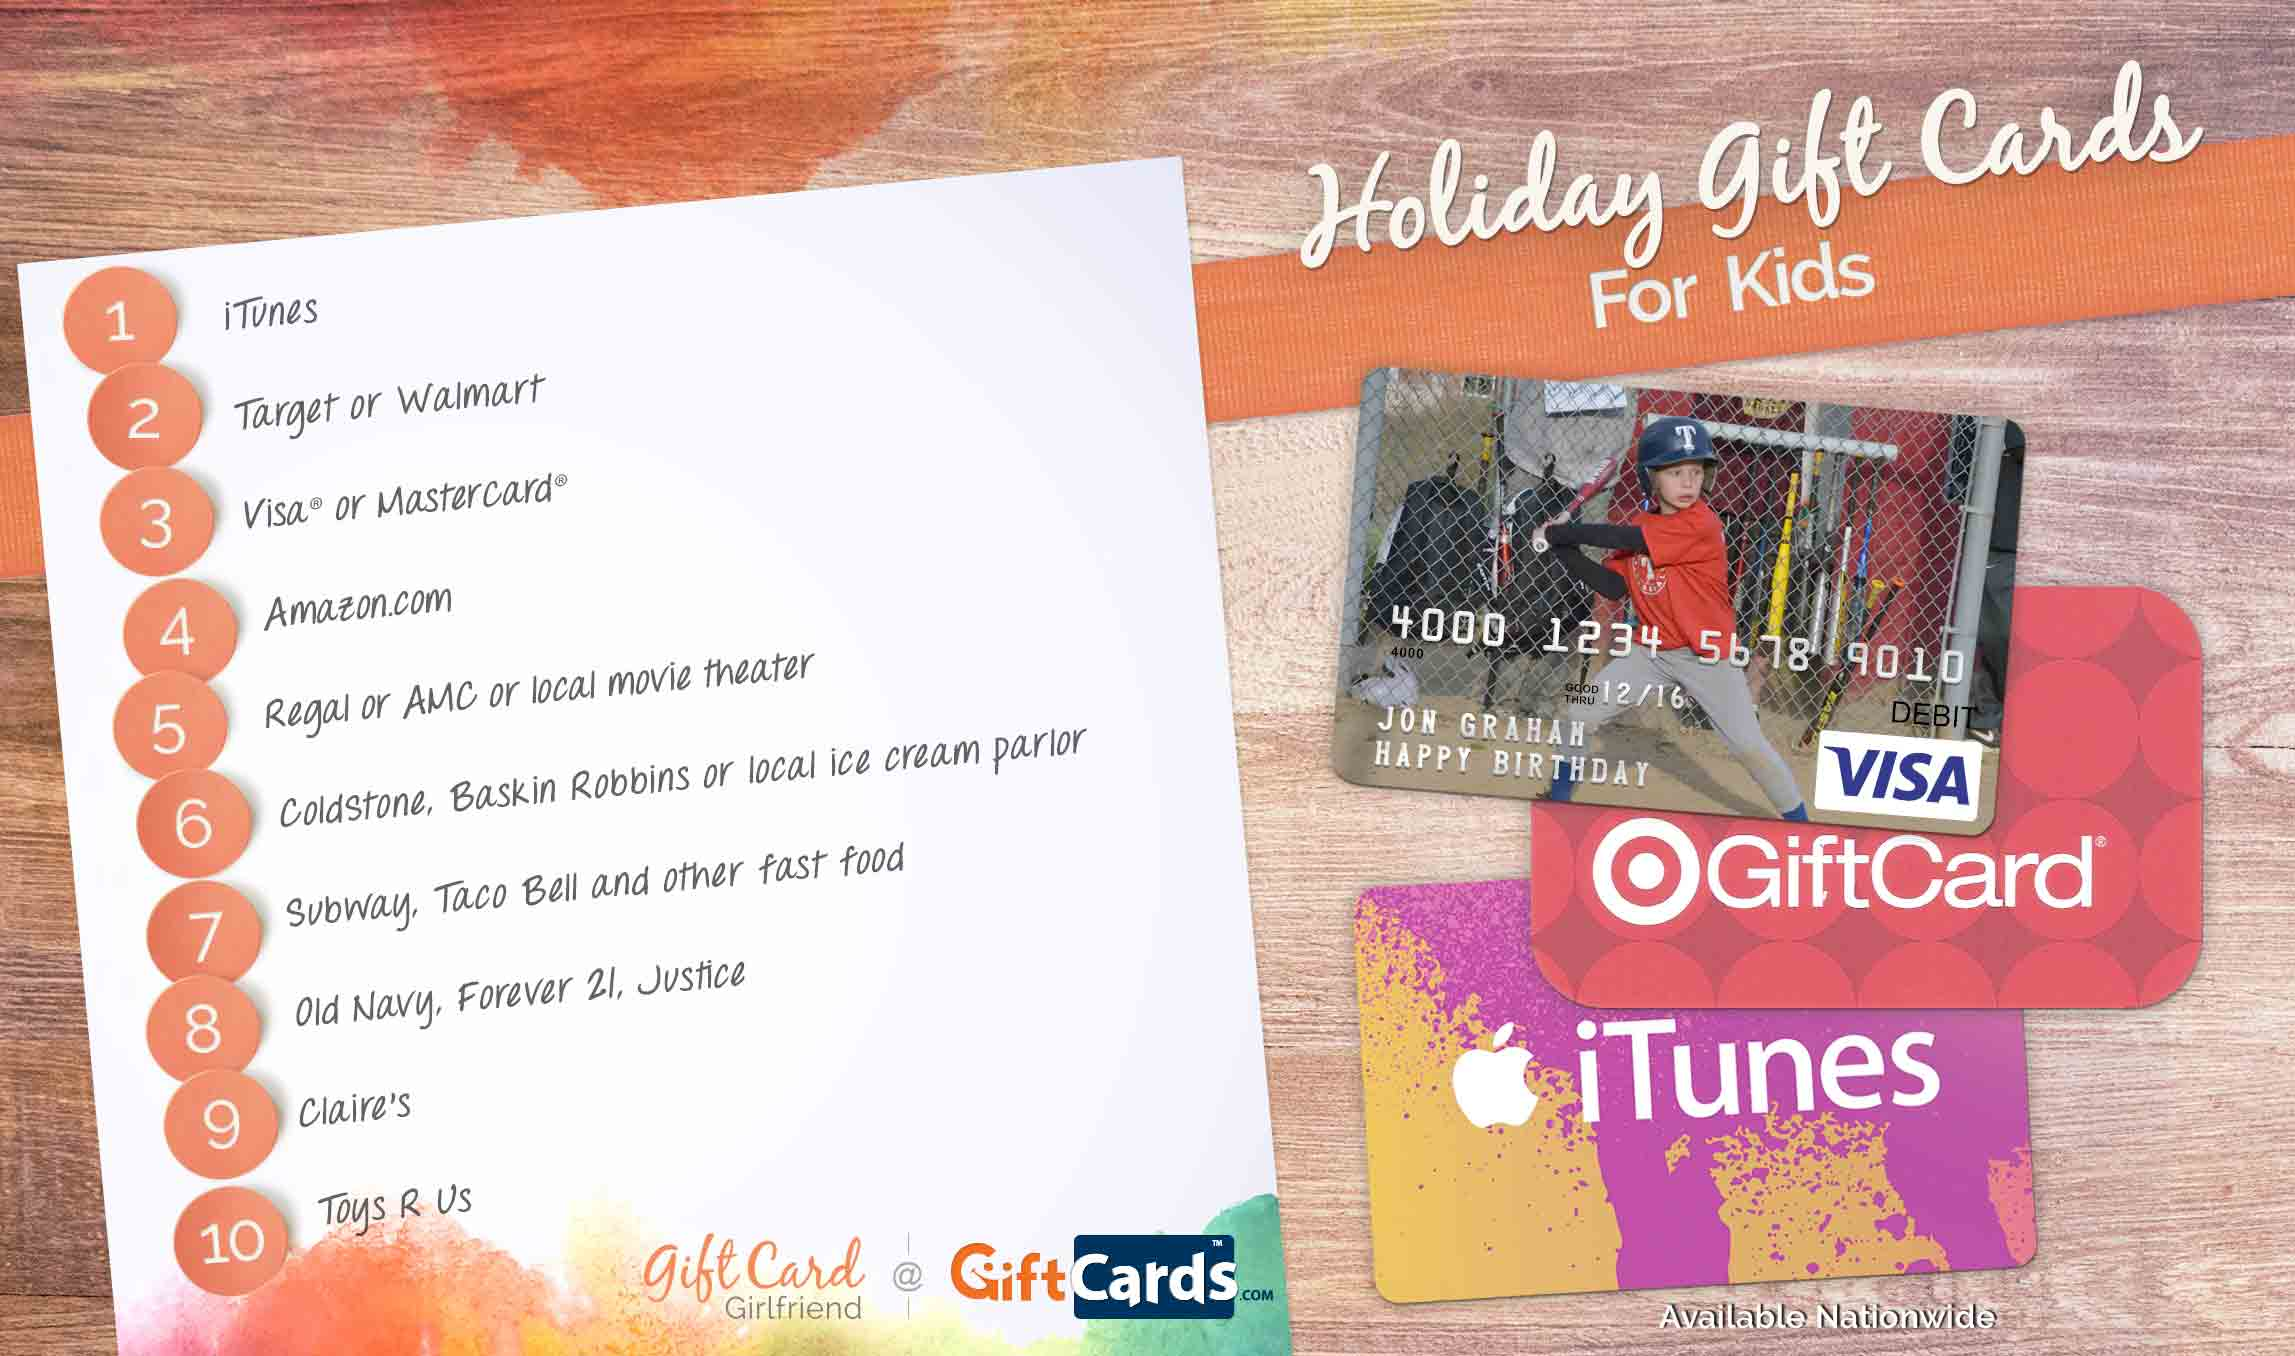 The Best Gift Cards for Kids | Gift Card Girlfriend